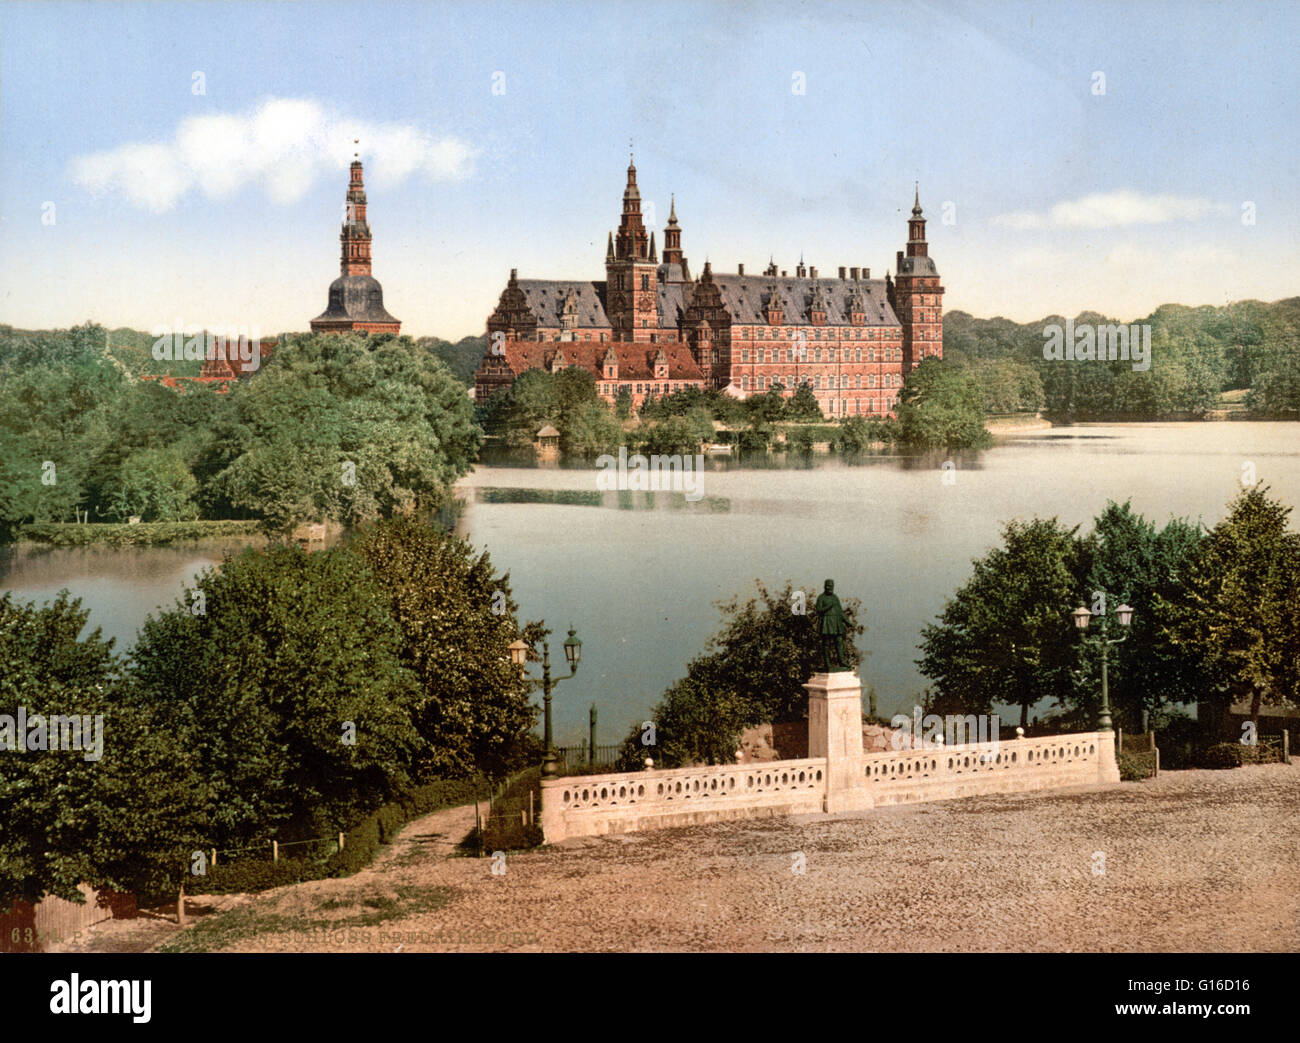 Frederiksborg Castle is a palace in Hillerod, Denmark. It was built as a royal residence for King Christian IV and Stock Photo